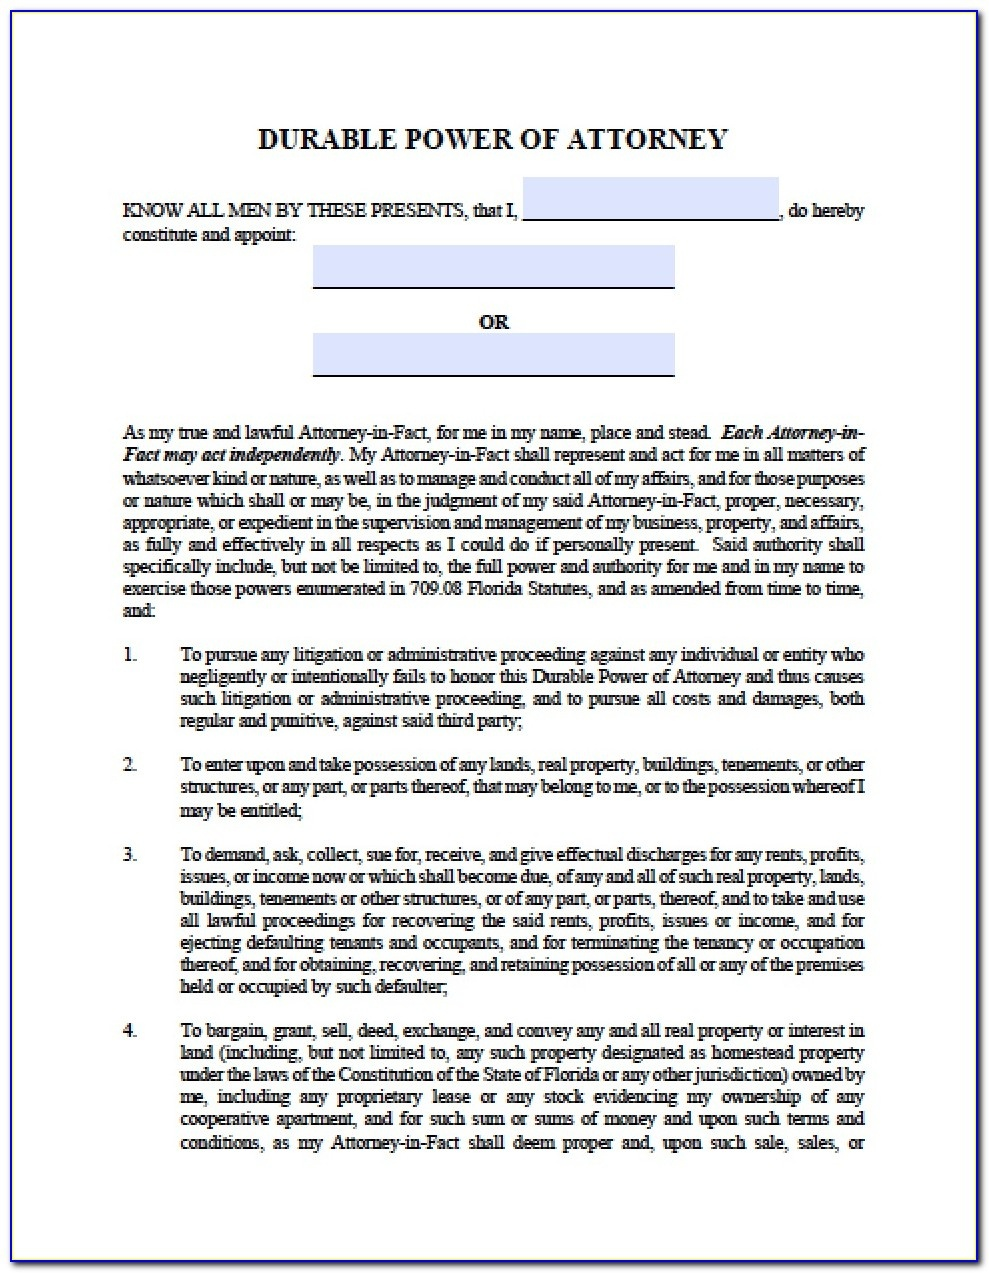 Free Printable Power Of Attorney Form Florida - Form : Resume - Free Printable Power Of Attorney Form Florida